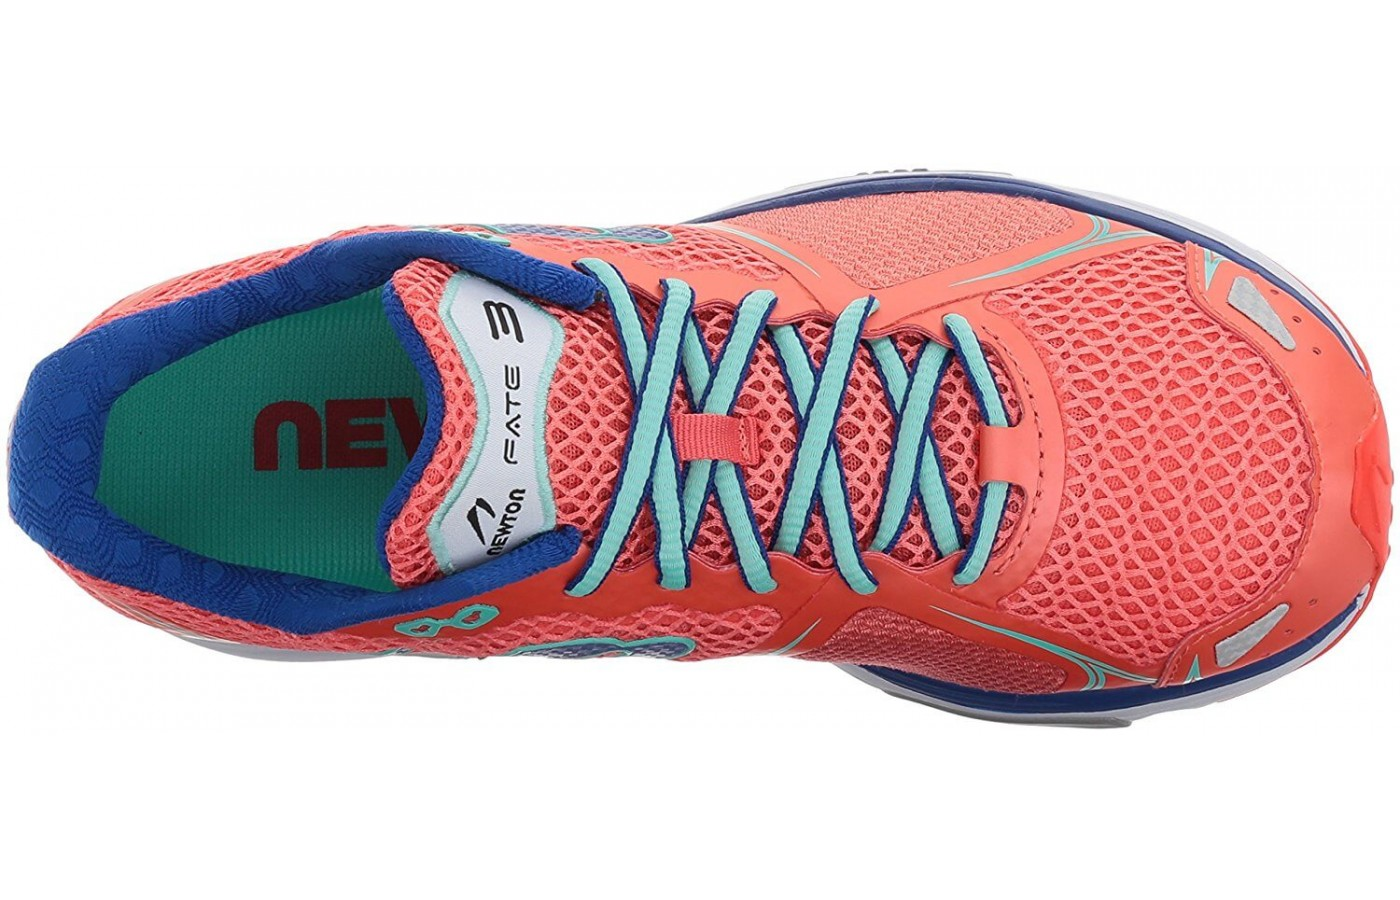 The Newton Fate 3 features an ETC sock liner